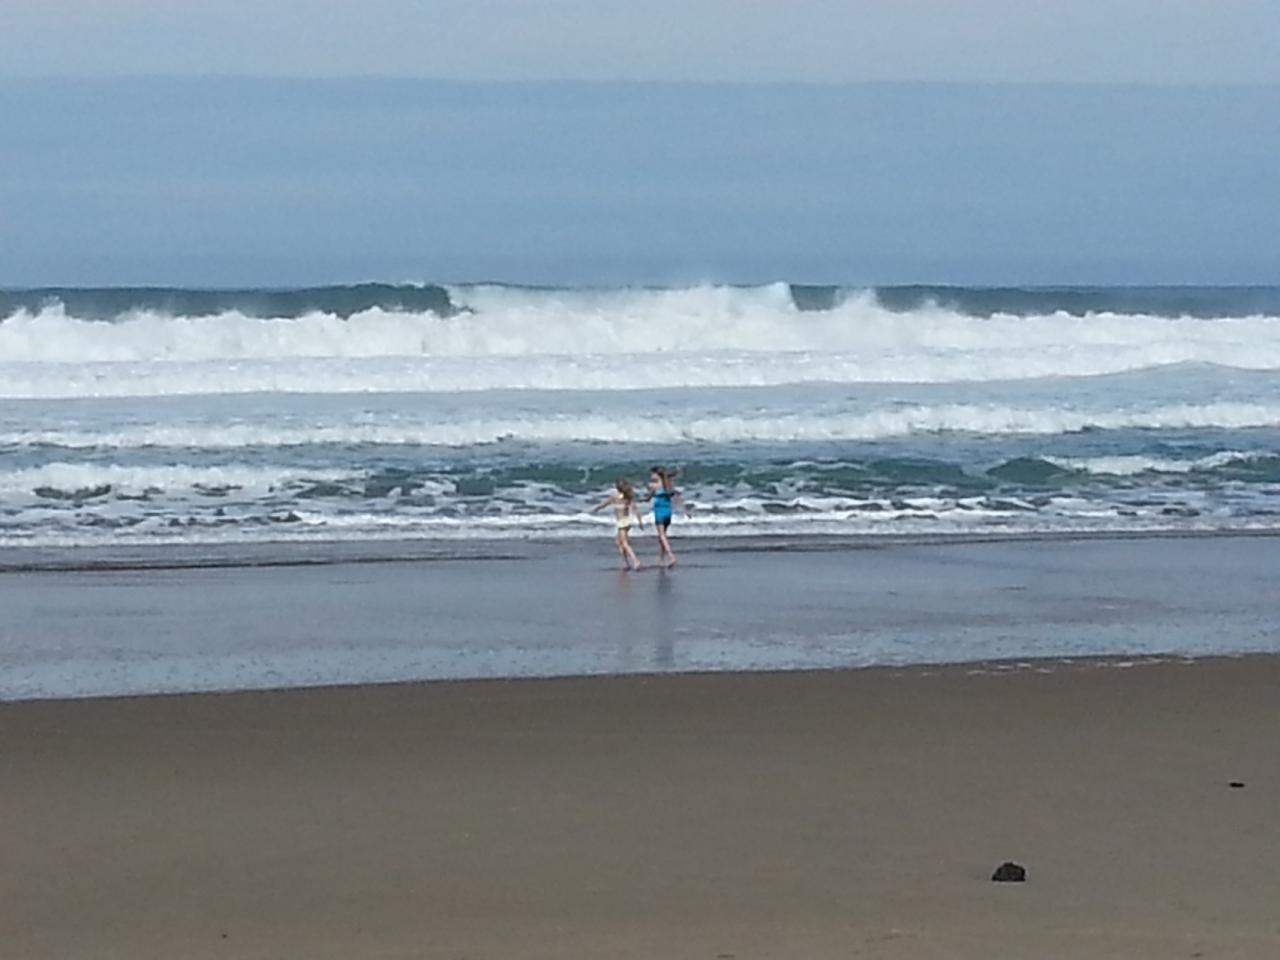 Two young girls playing in the surf.